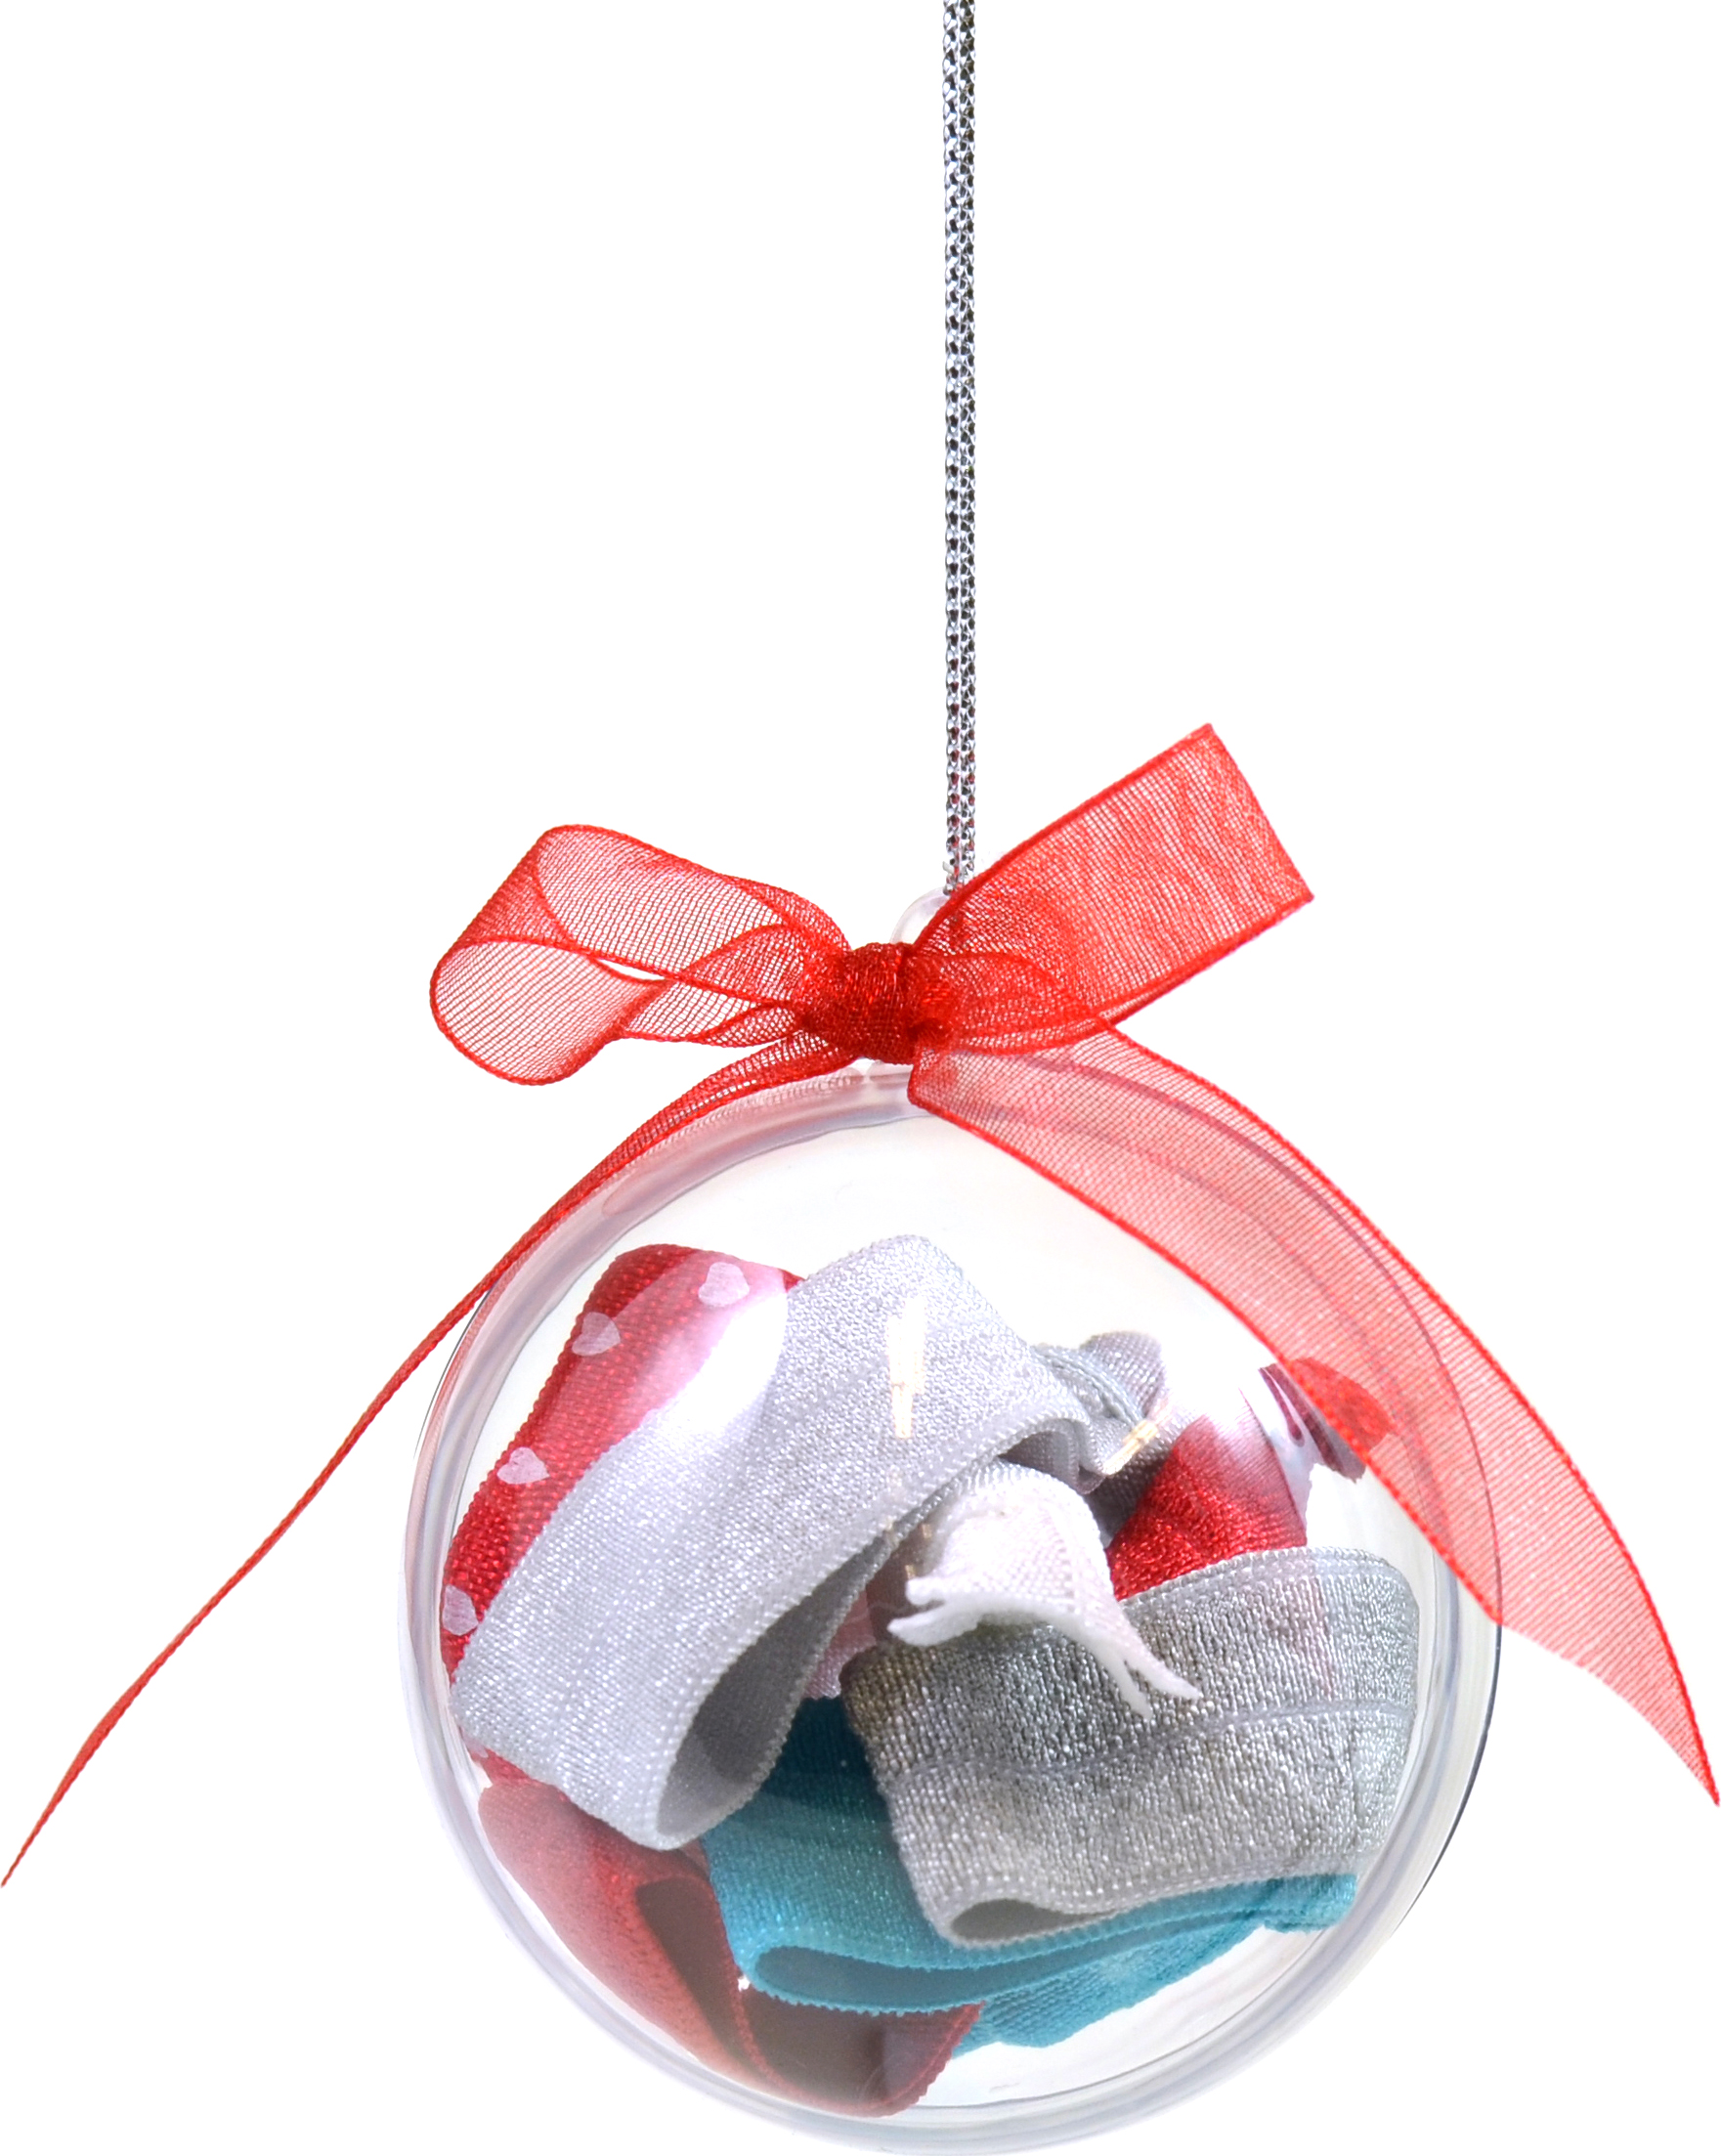 Hair stylist christmas ornaments - For The Rest Of Our Holiday Collection Visit Cyndibands Com